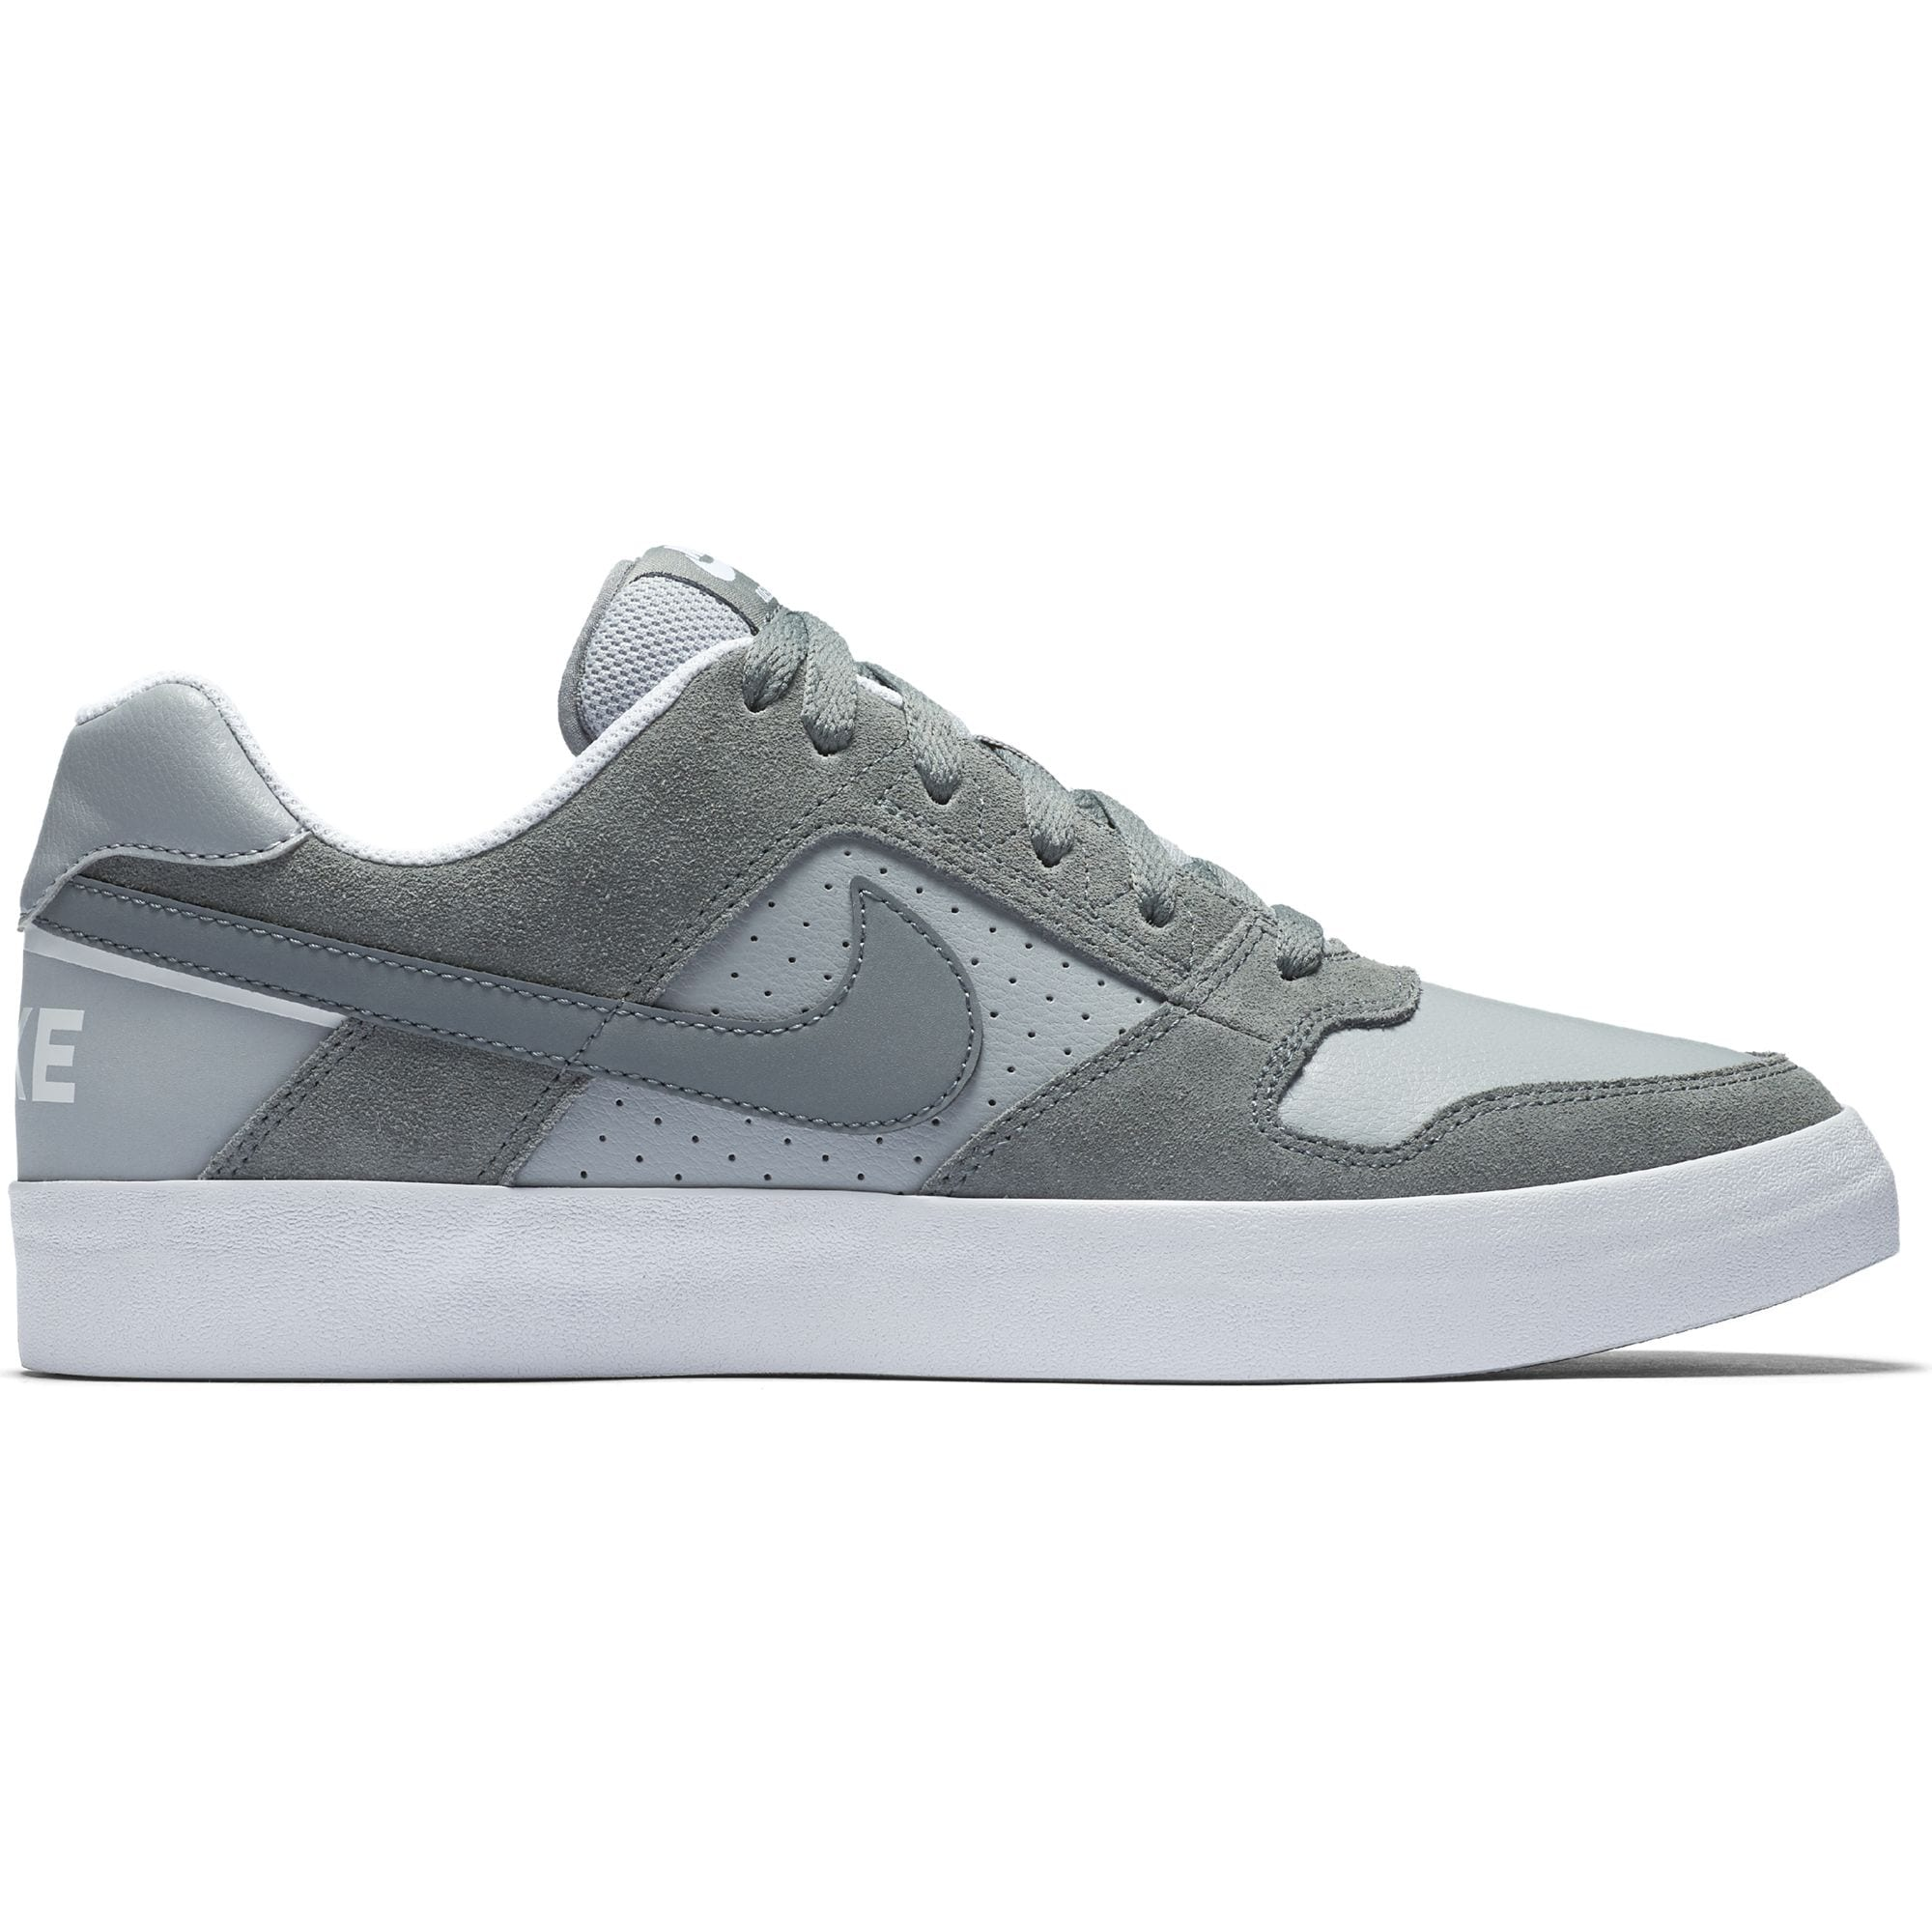 Nike SB Delta Force Vulc Skate Shoes - Cool Grey/Wolf Grey | Nike Skate  Shoes | Nike Trainers UK | Cheap Nike Shoes Online | Skatehut